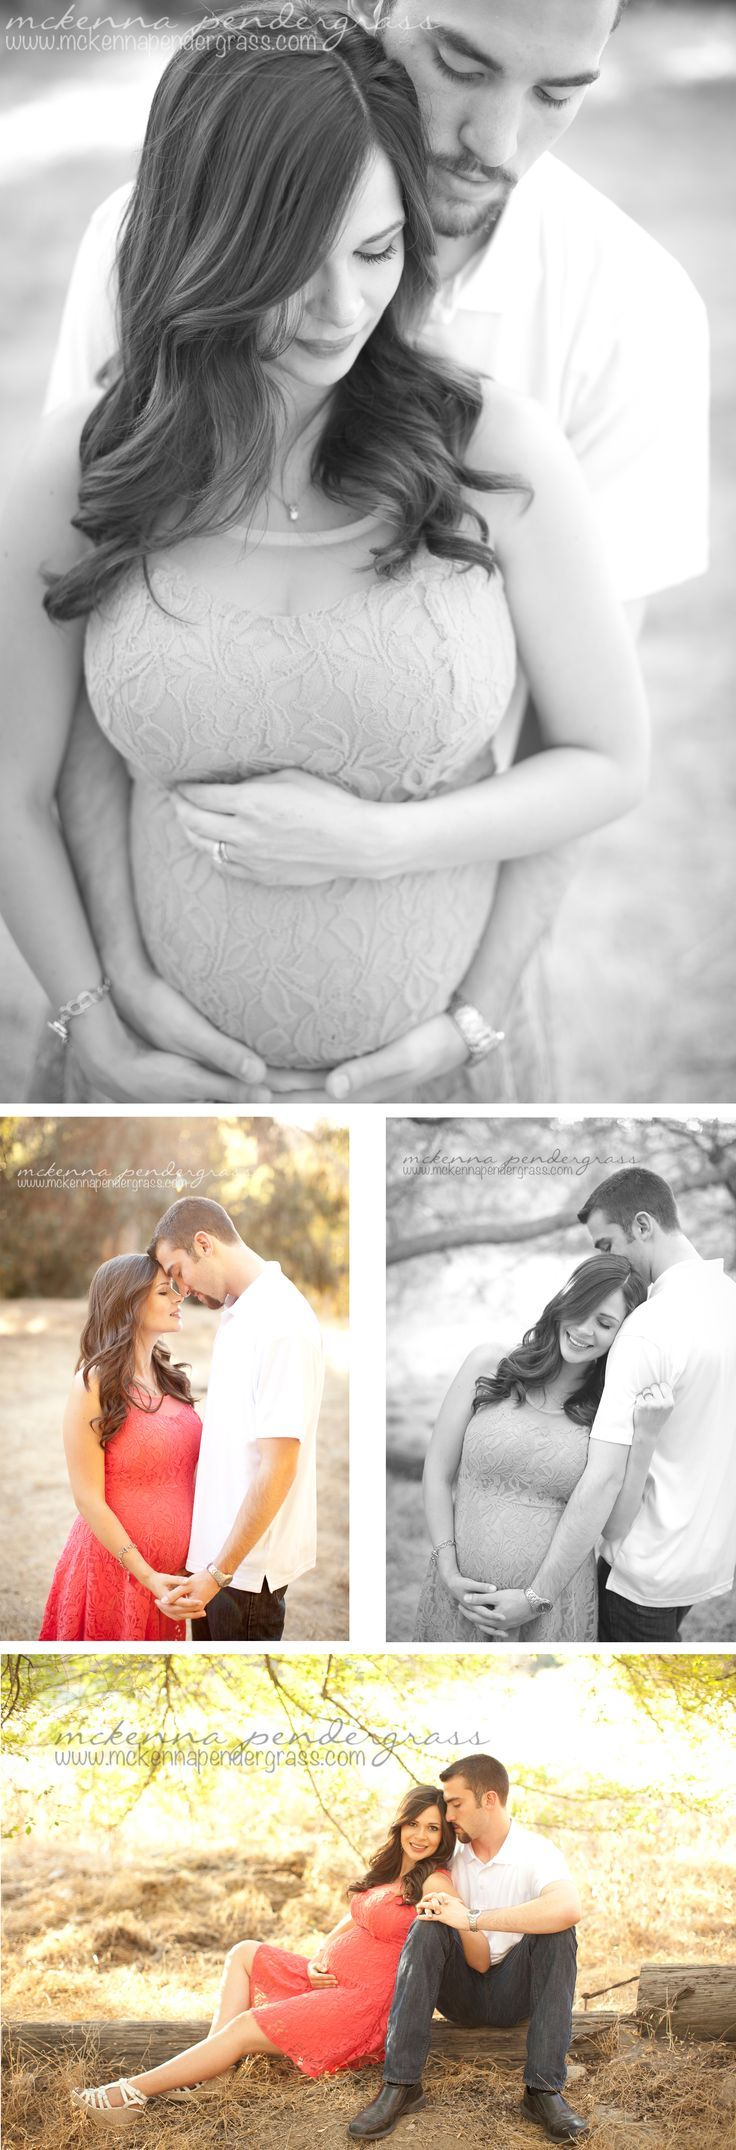 Romantic couples maternity posing ideas  Pasadena Maternity Photographer  McKenna Pendergrass Photography